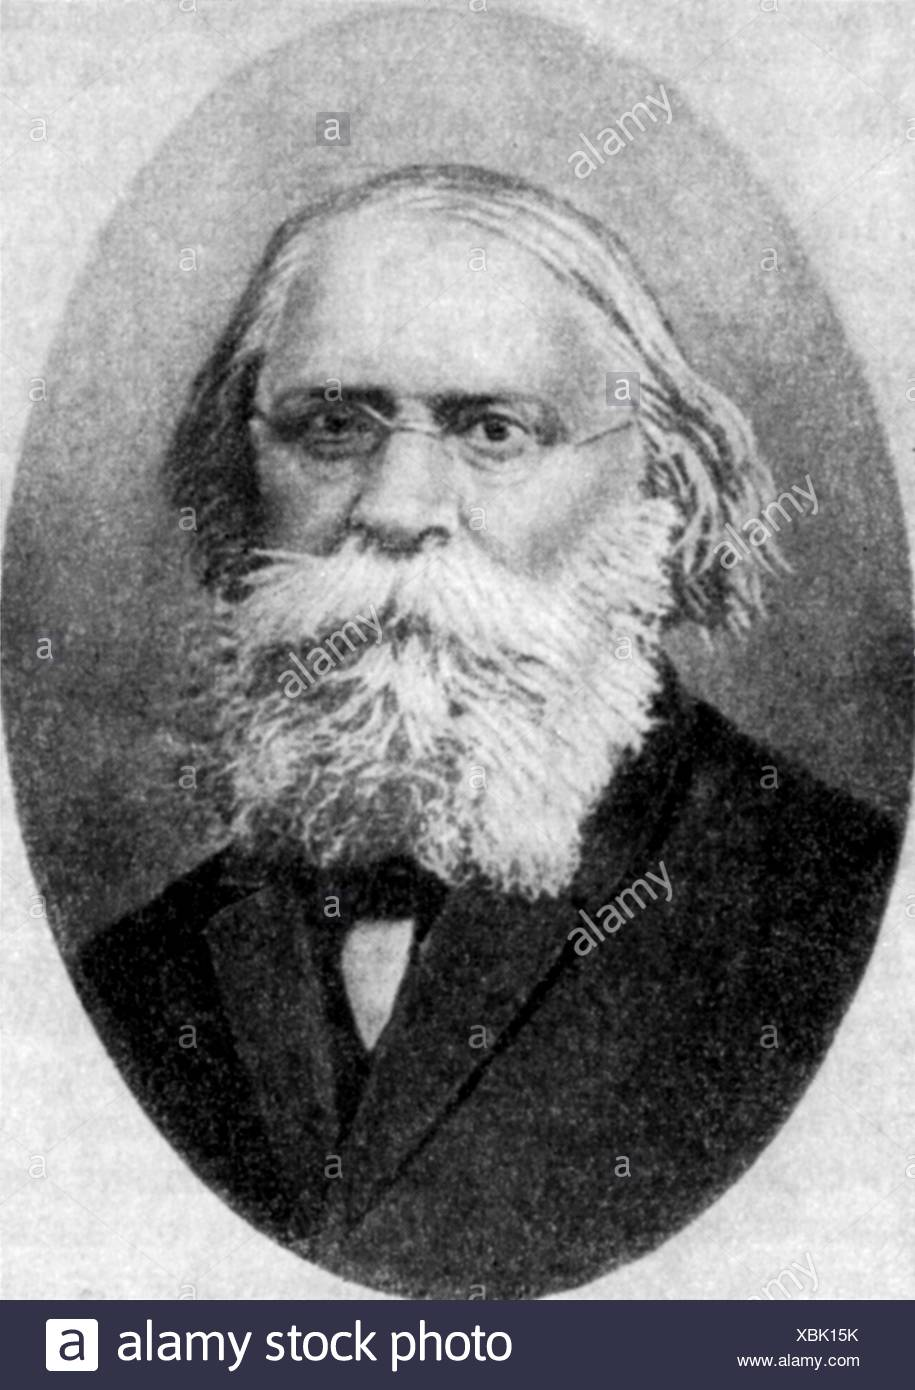 Lavrov, Pyotr Lavrovich, 14.6.1823 - 6.2.1900, Russian poet, publicist, sociologist, portrait, late 19th century, Additional-Rights-Clearances-NA - Stock Image